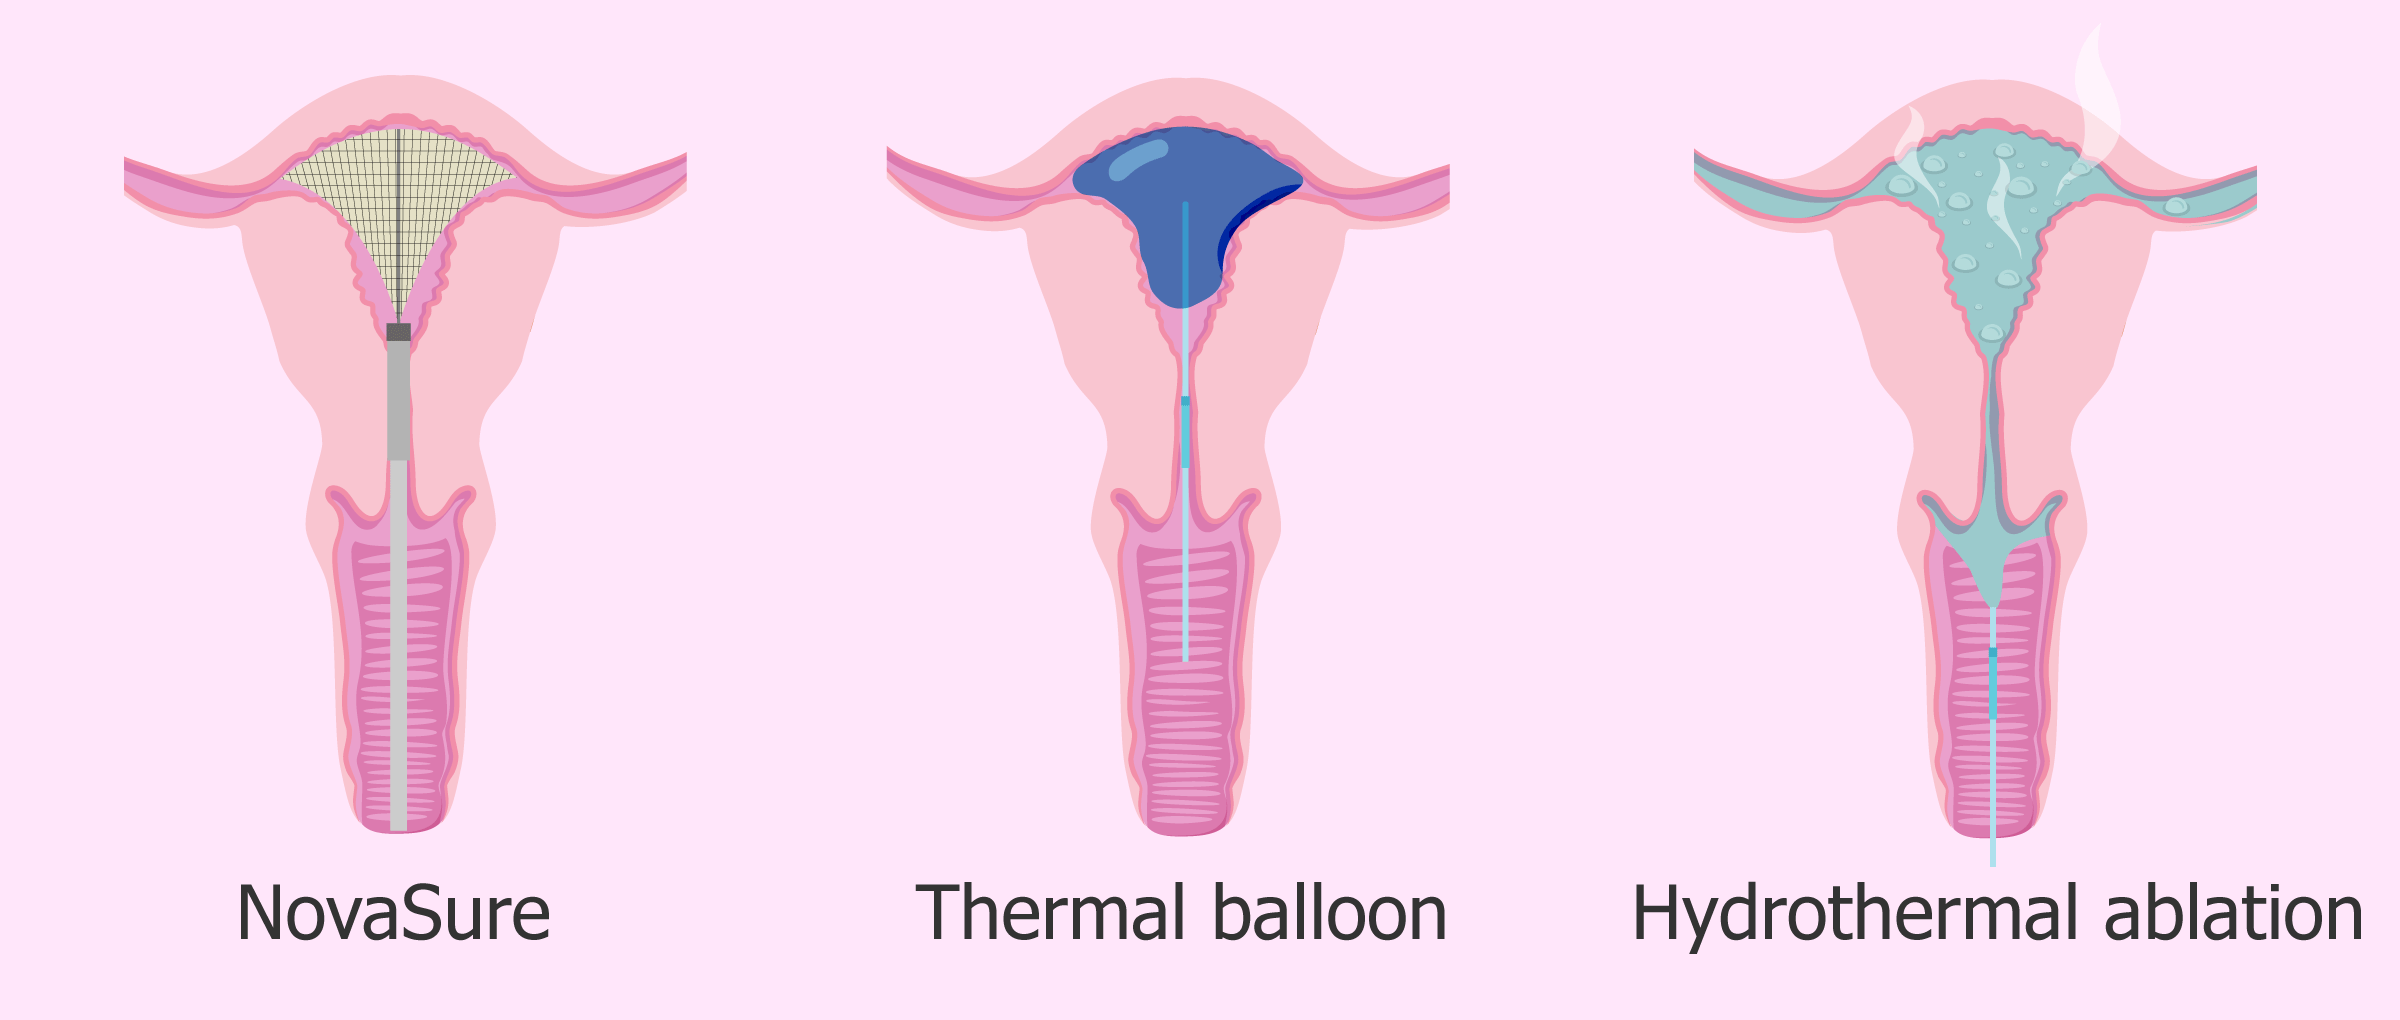 Endometrial ablation: definition, procedure and chances of pregnancy